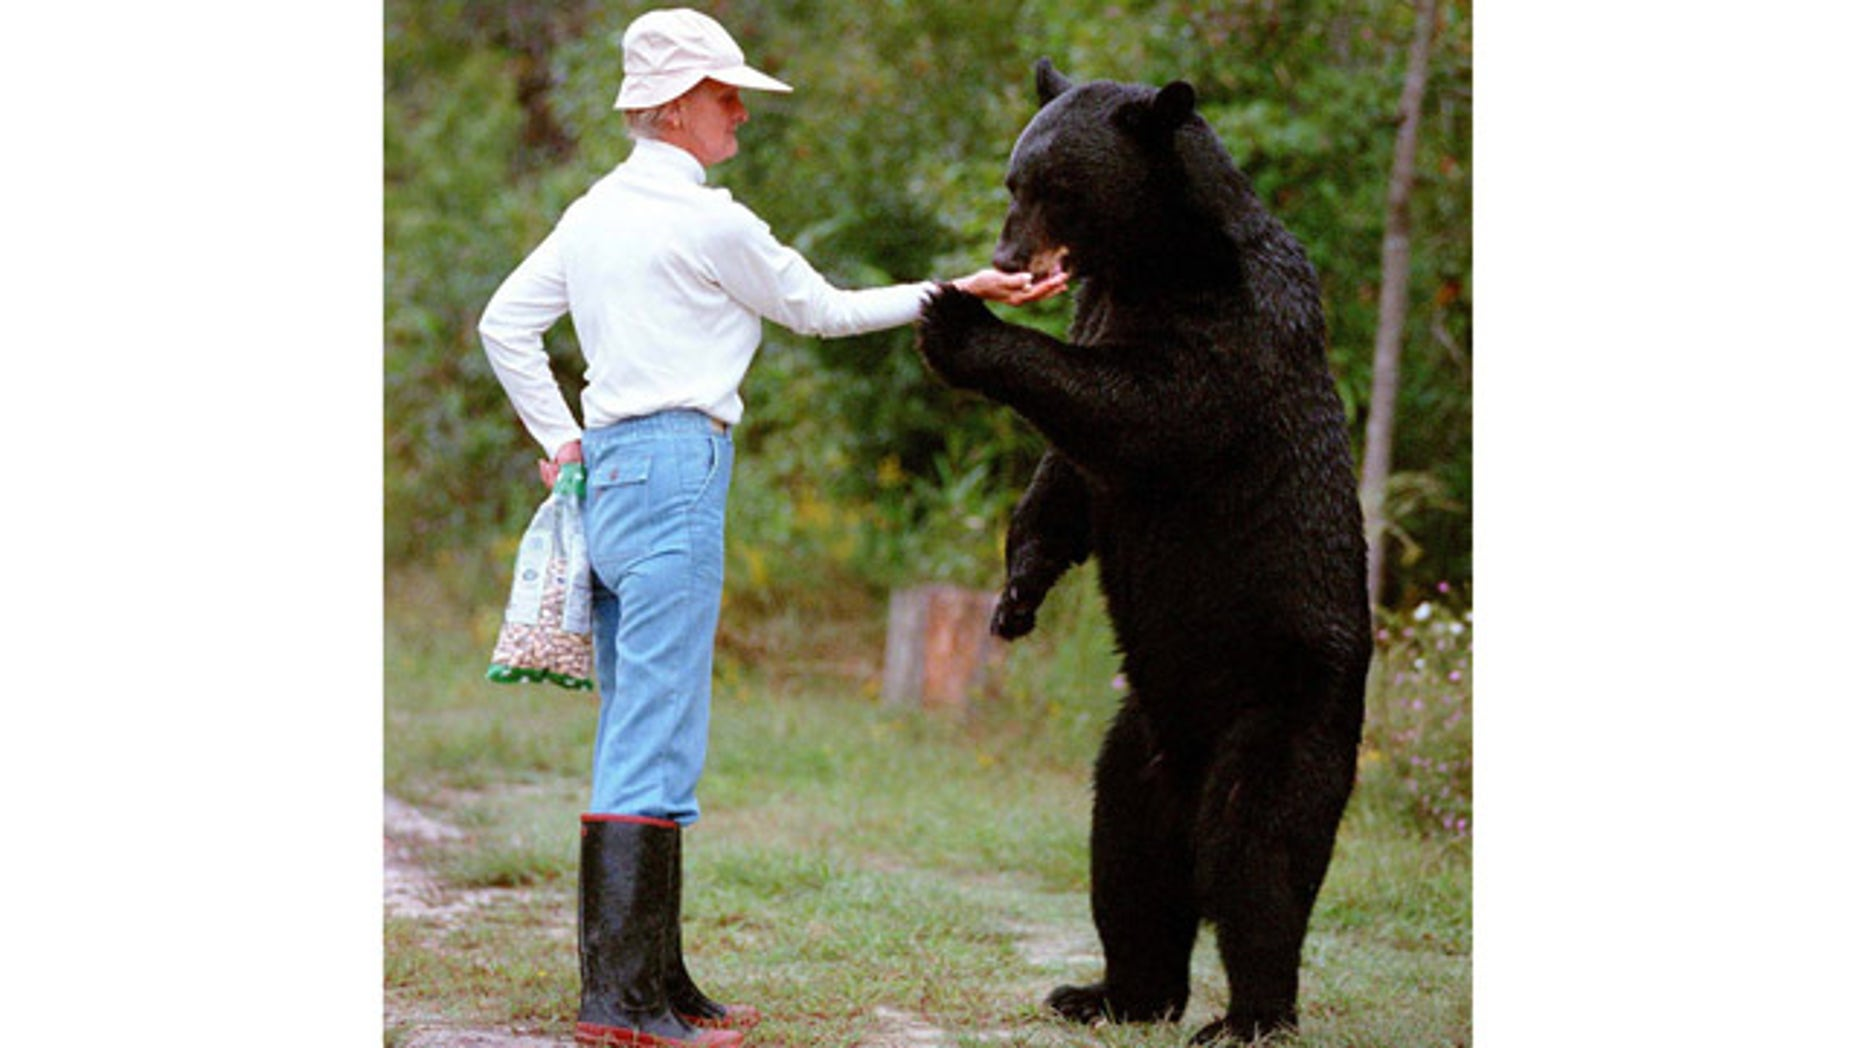 """This 1997 file photo, provided by The Virginia-Pilot, shows Kay Grayson feeding a 400-pound black bear she called """"64"""" from her hand."""